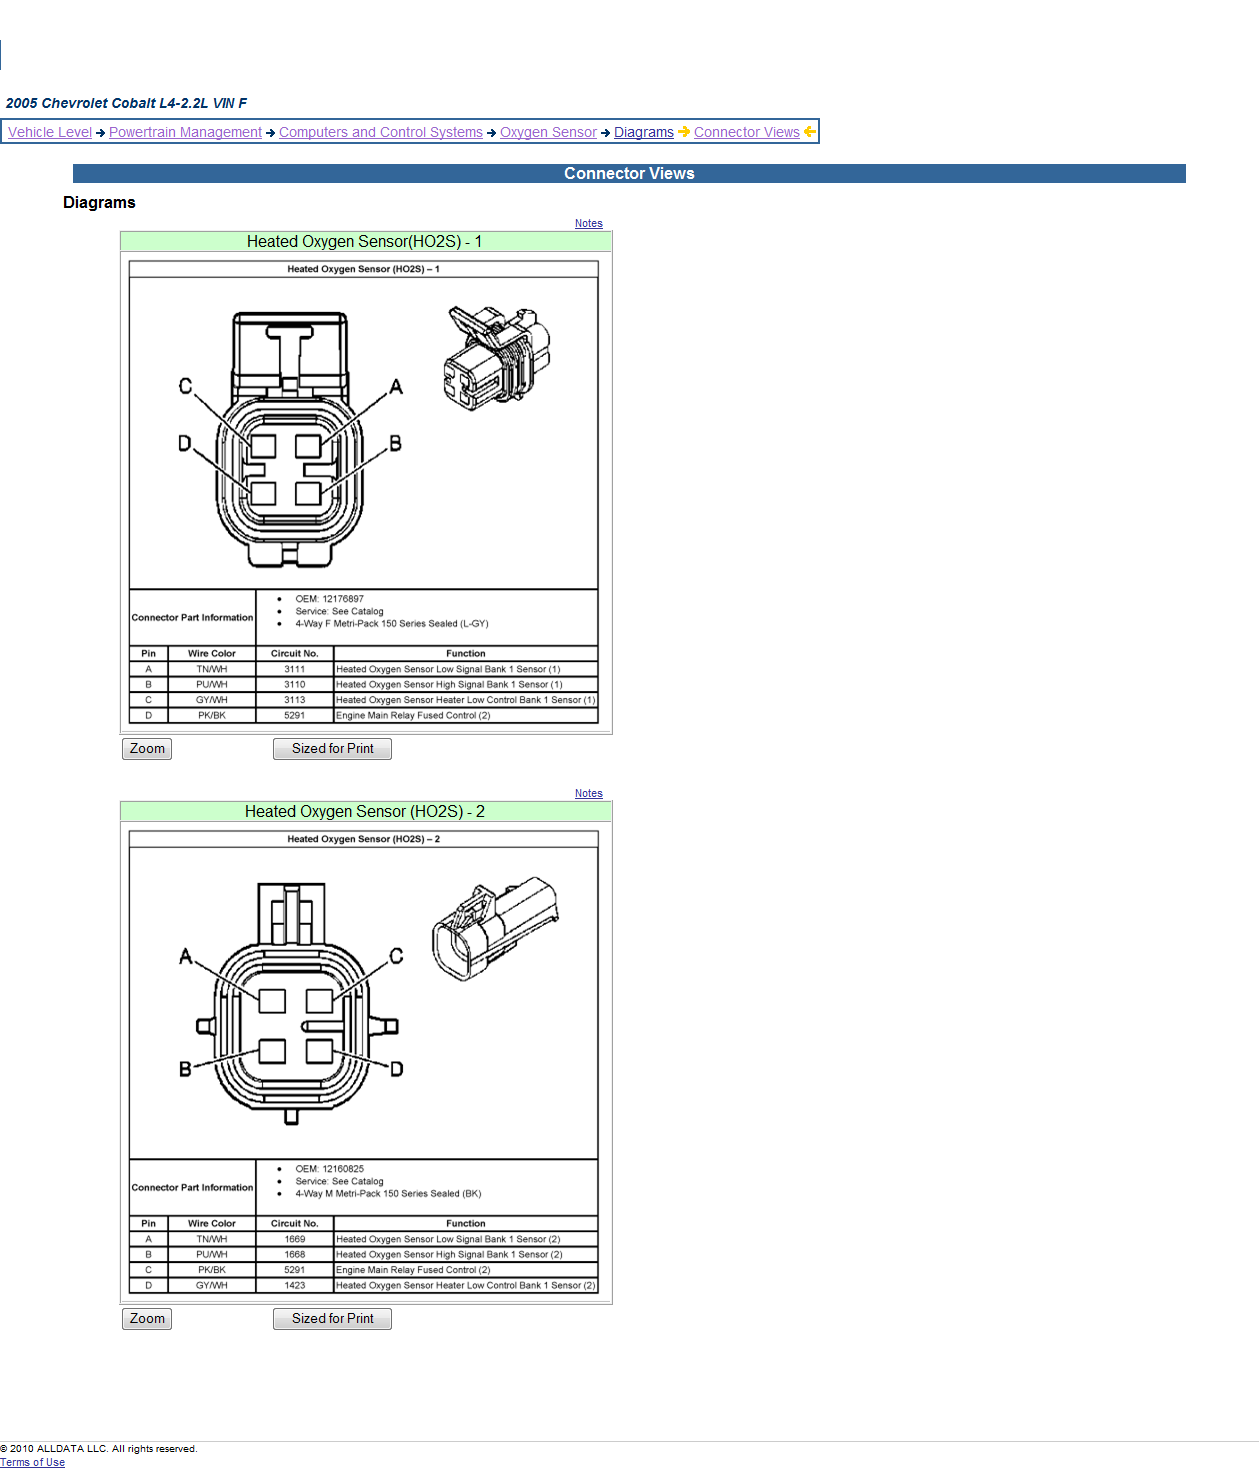 Gm o2 sensor wiring diagram about universal lambda sensor on 98 silverado o2 sensor wiring diagram 1995 Chevy Silverado 6.5 Diesel Transmission Wire Diagram 08 Chevy Silverado Wiring Diagram